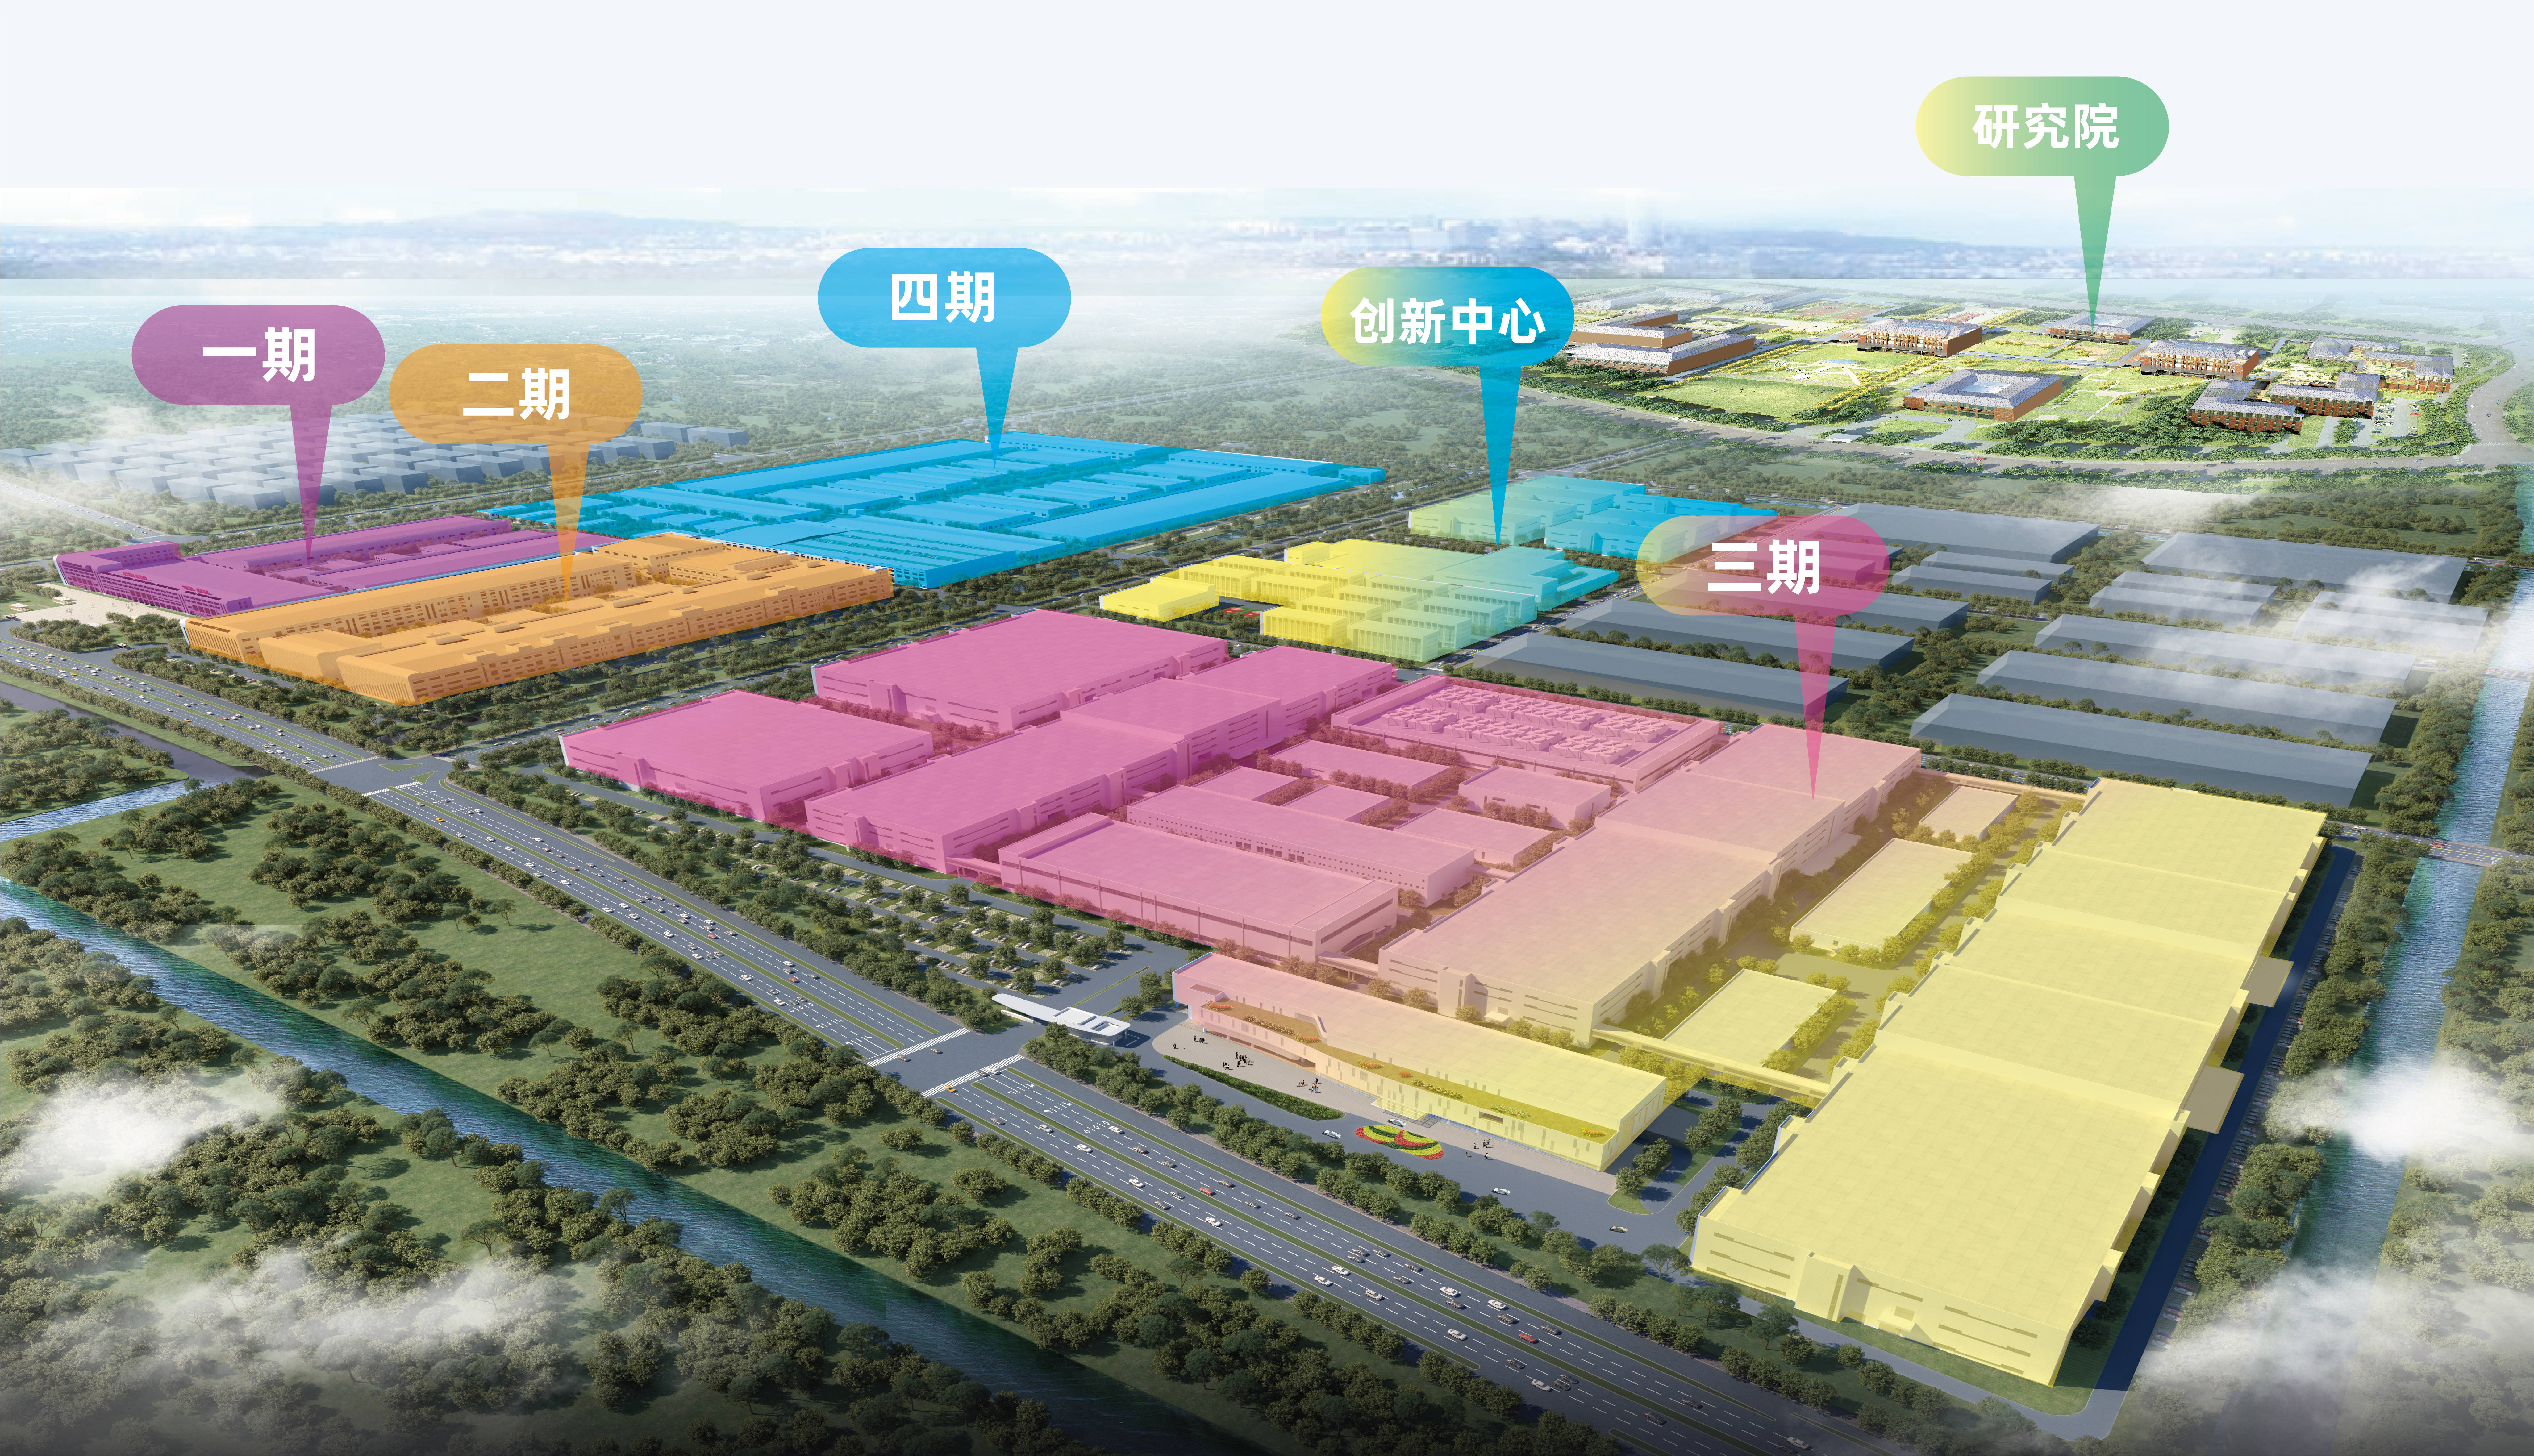 Big news! 10 Billion CALB Lithium Jiangsu Phase III Project Officially Begins Construction!